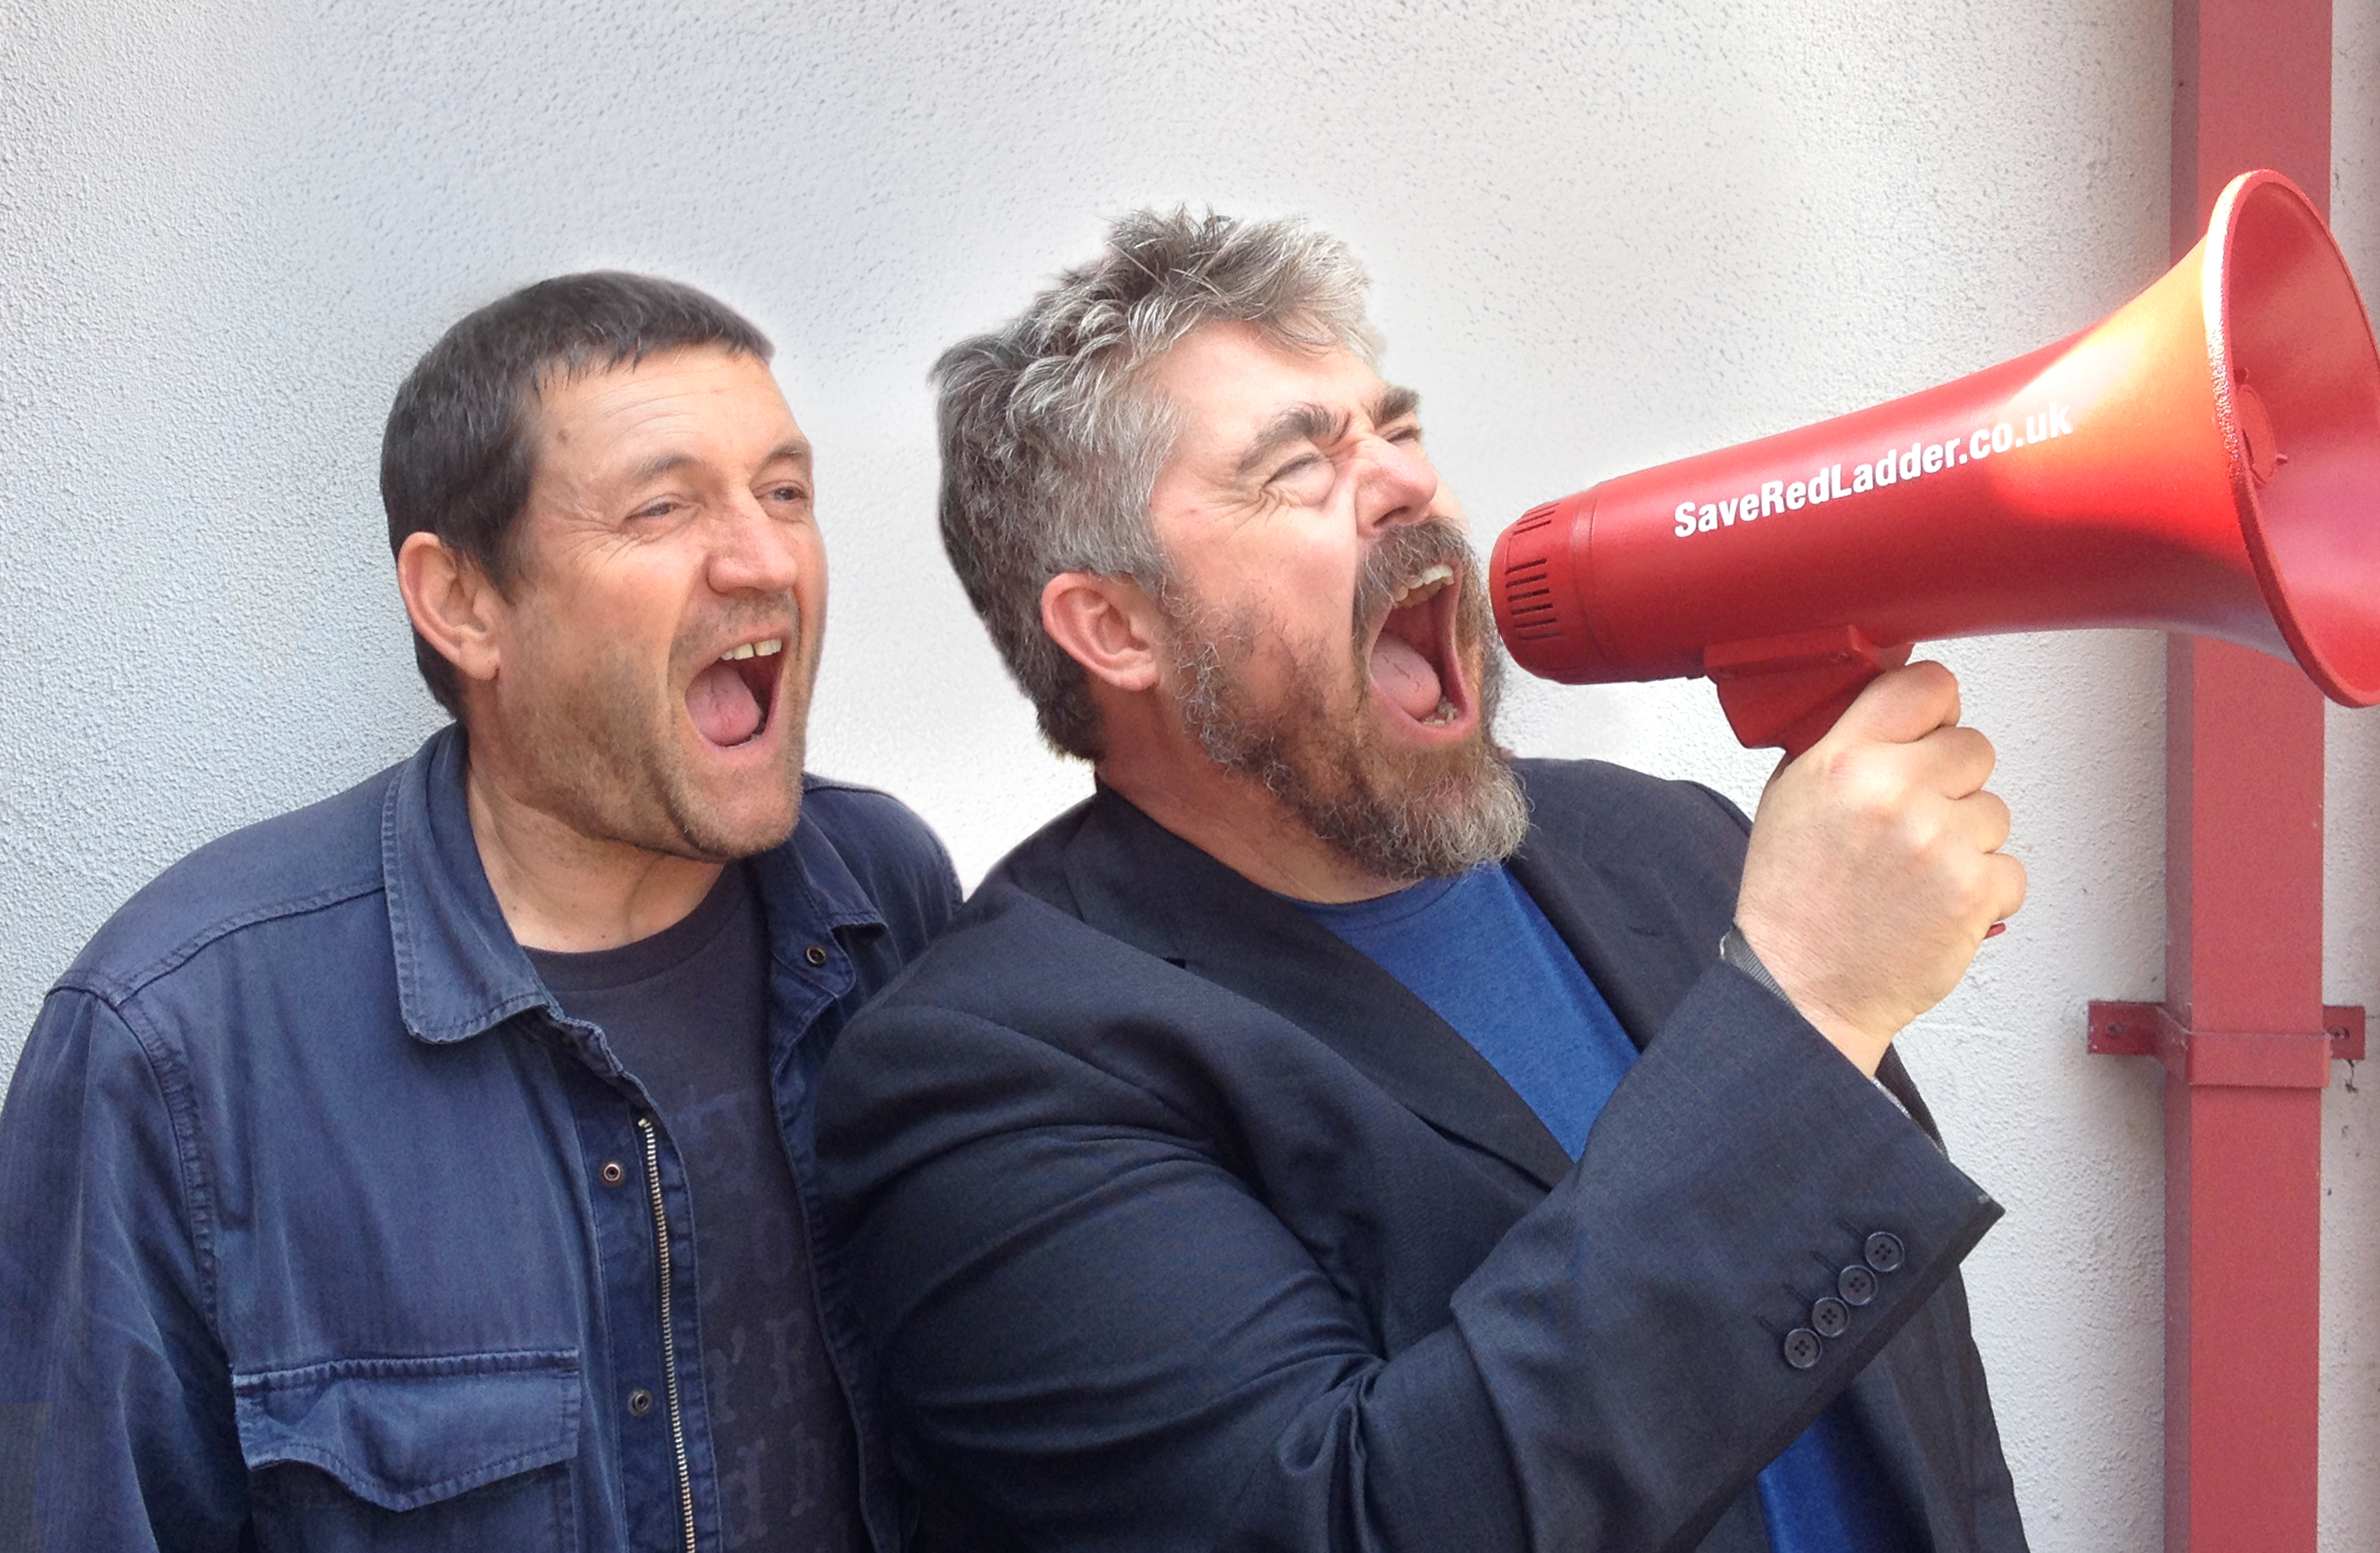 Phill Jupitus and Paul Heaton get behind the red Save Red Ladder megaphone!